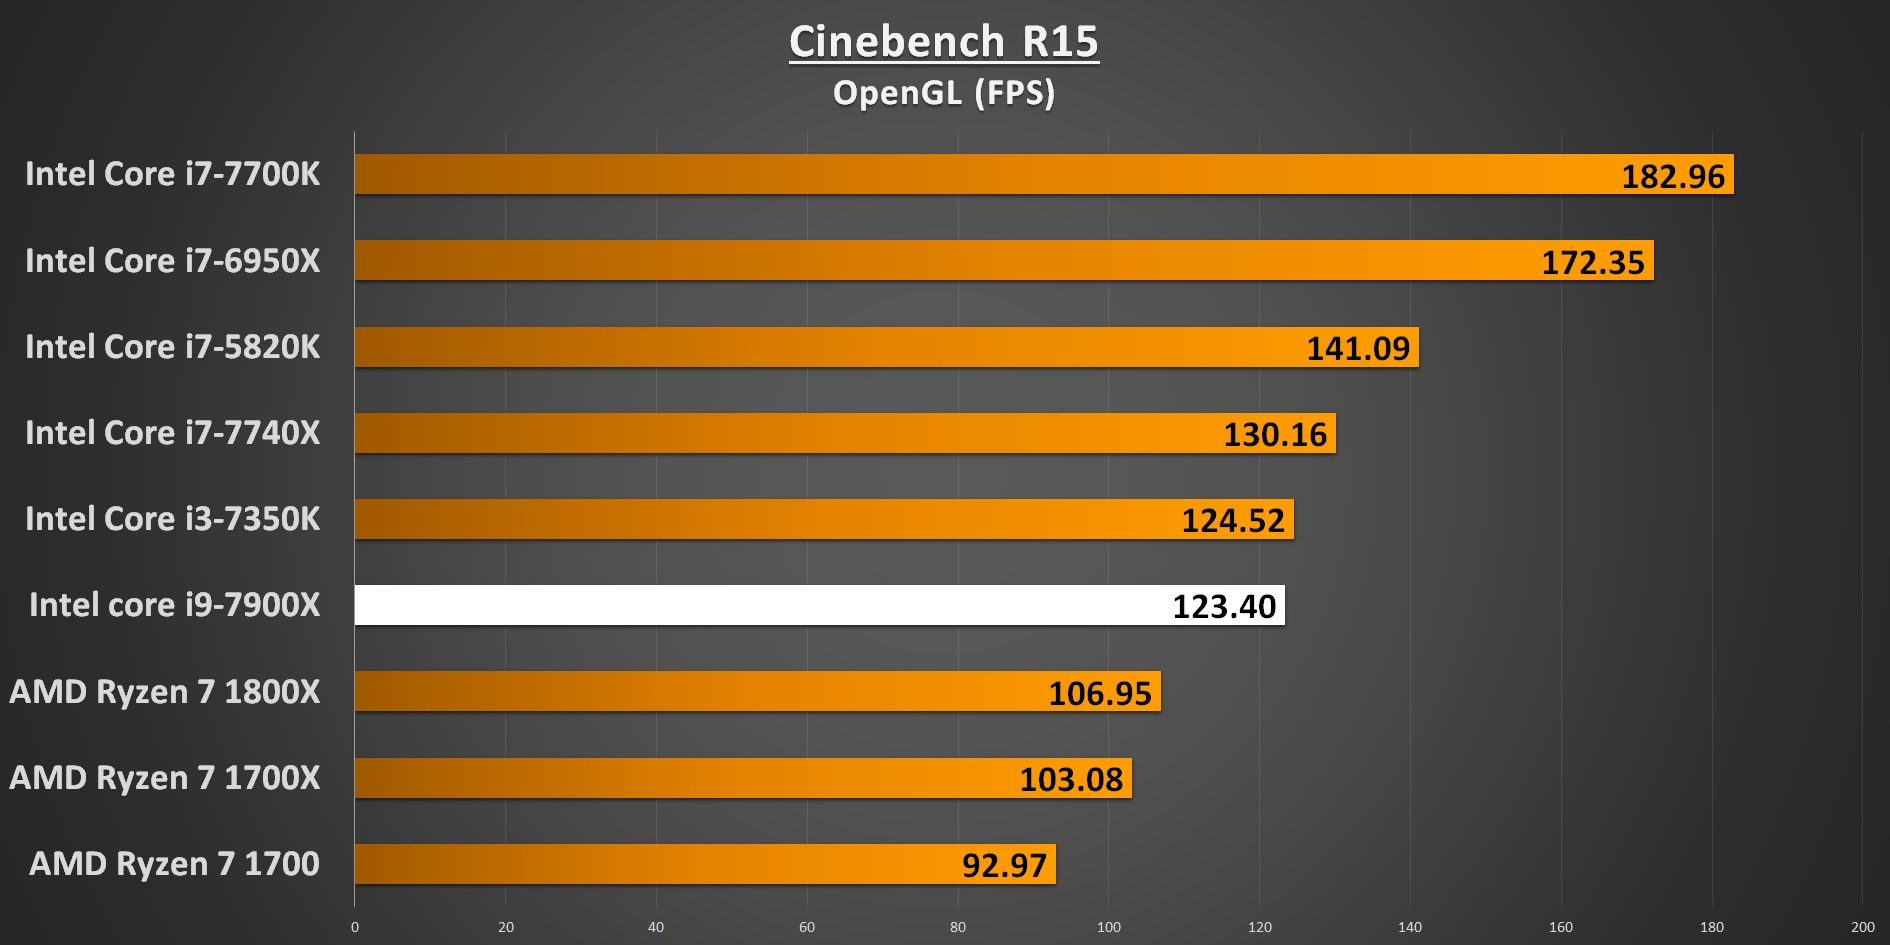 Cinebench R15 OpenGL 7900X